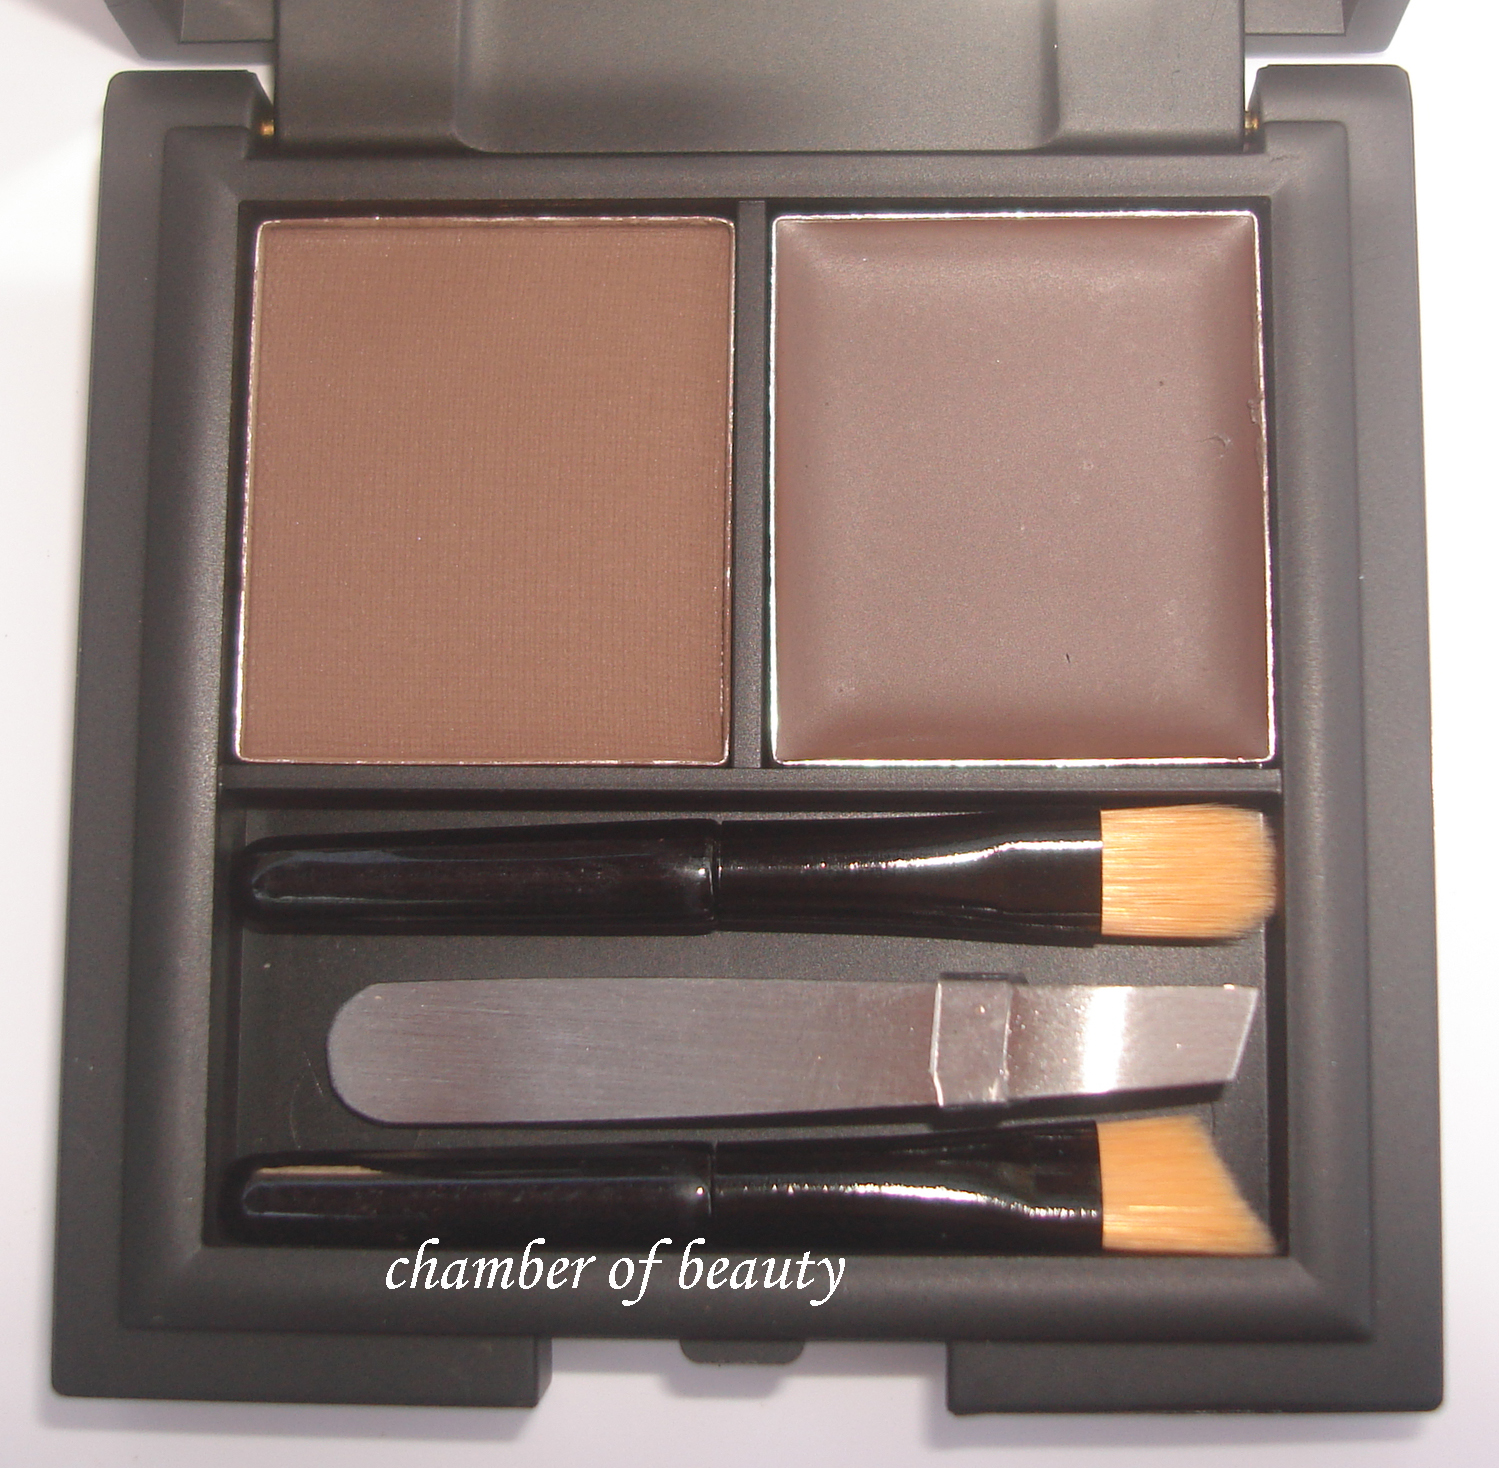 Shape up your brows with Sleek Makeup's Brow Kit - Chamber of beauty